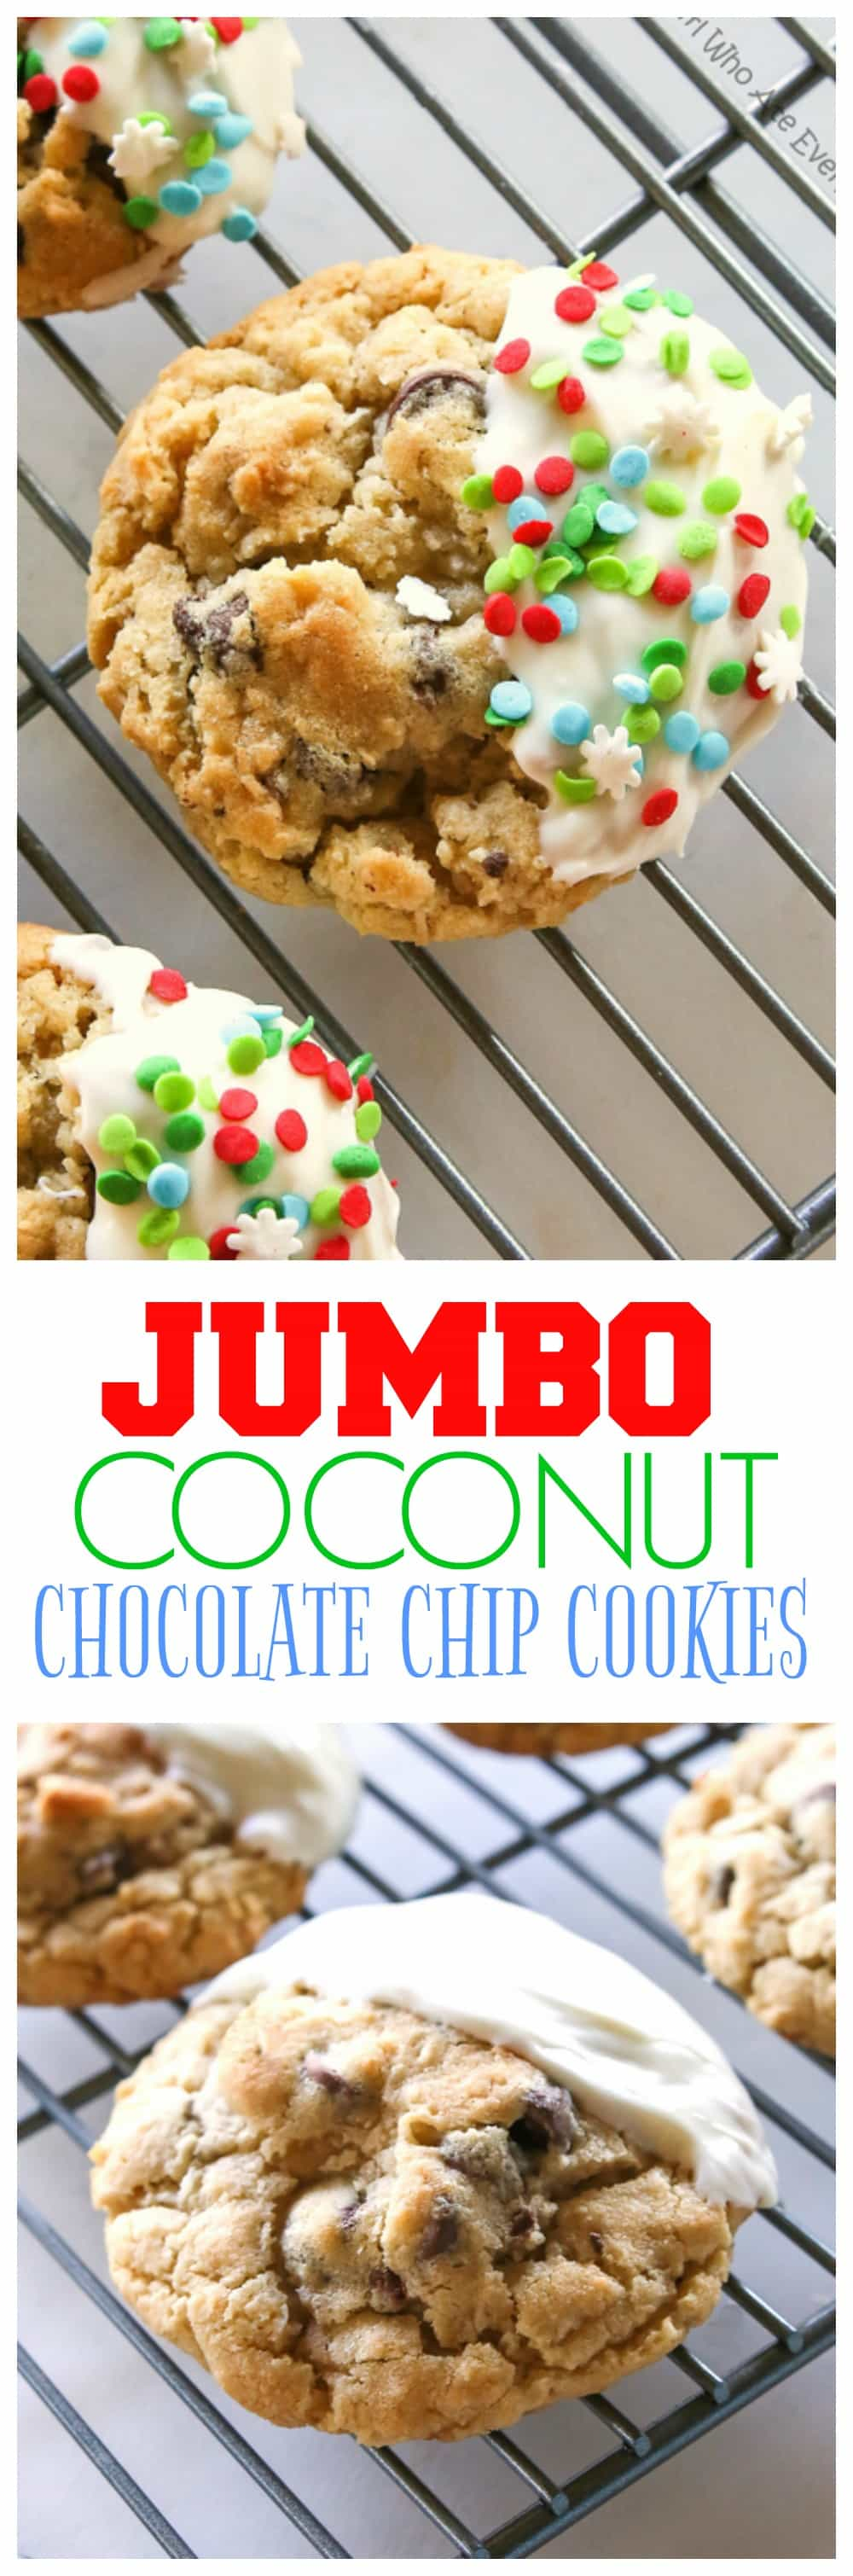 Jumbo Chocolate Chip Cookies - These bakery style cookies are full of chocolate chips and coconut. They have a crisp outside with a soft and chewy inside. #jumbo #coconut #chocolate #chip #cookies